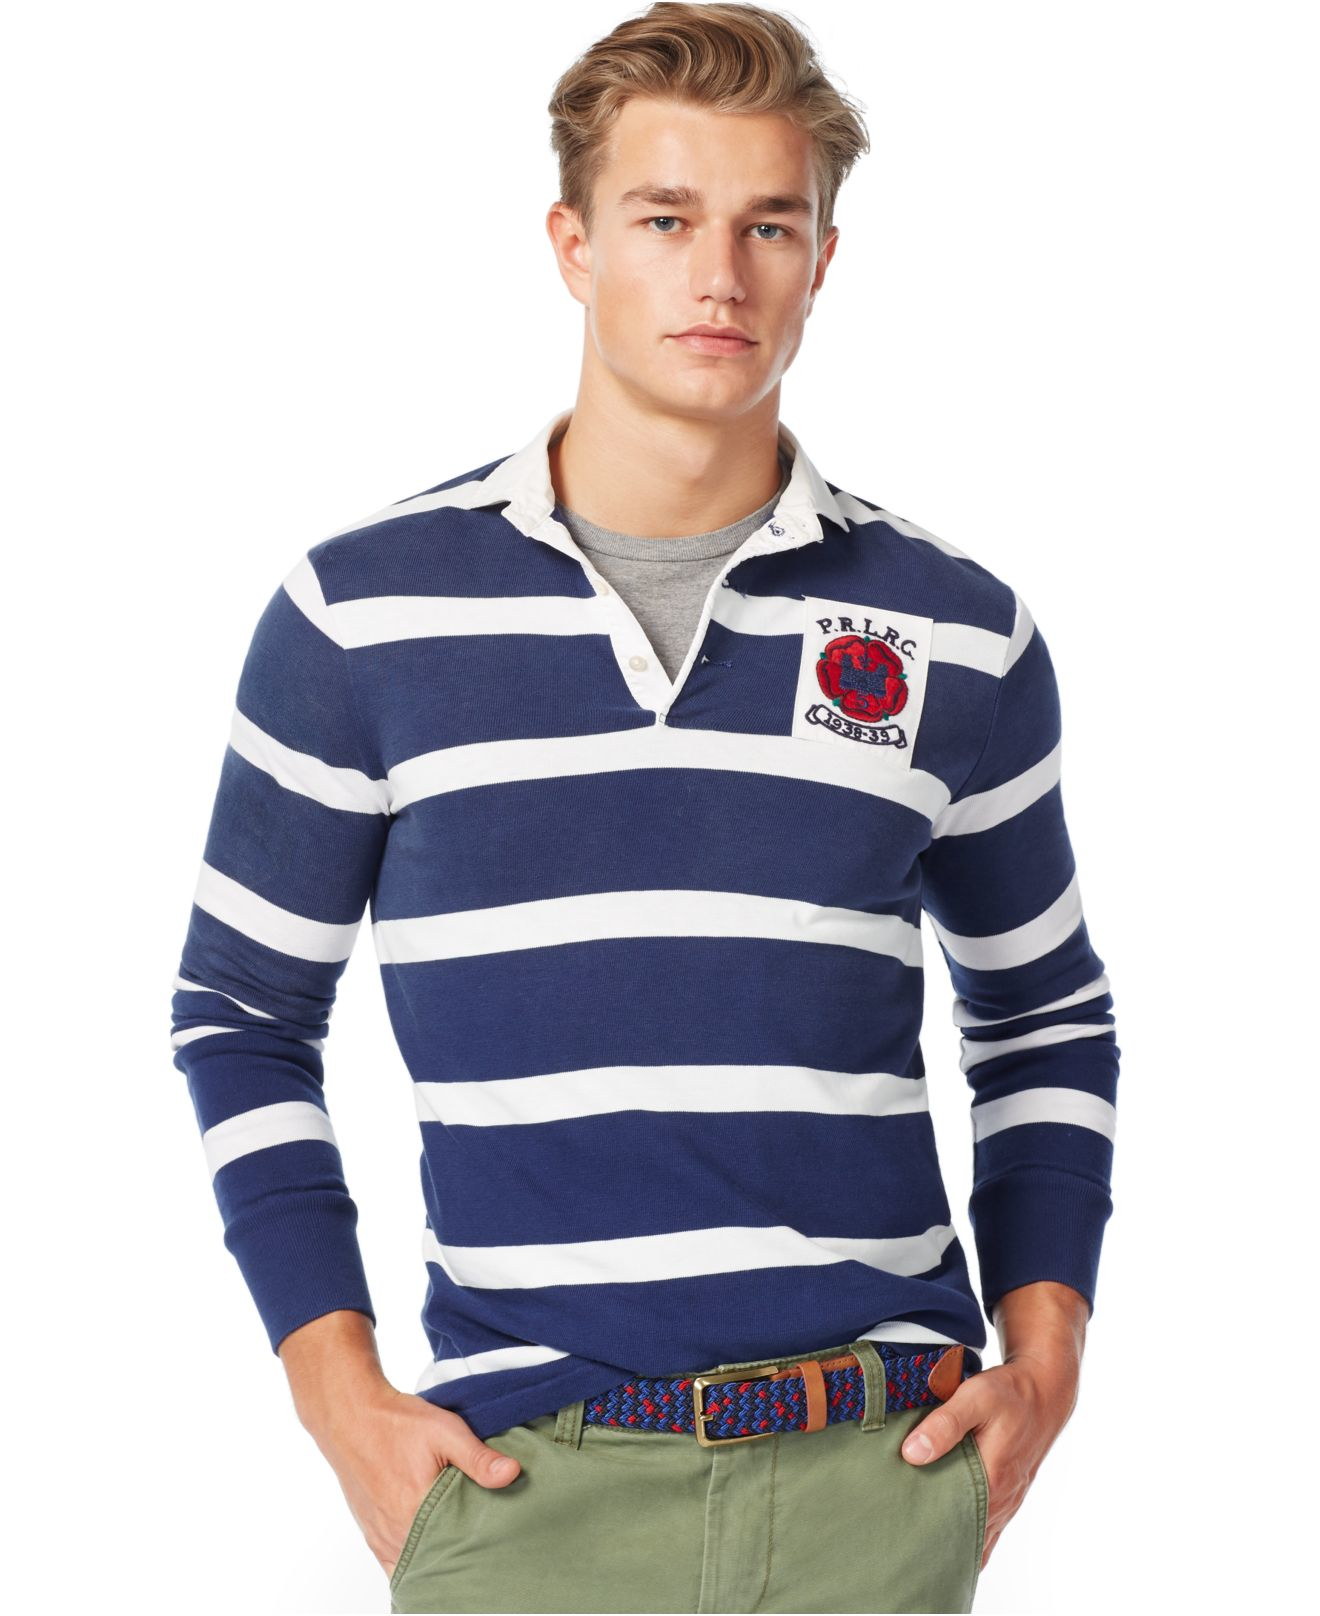 Polo ralph lauren long sleeve striped rugby shirt in blue for Long sleeve striped rugby shirt